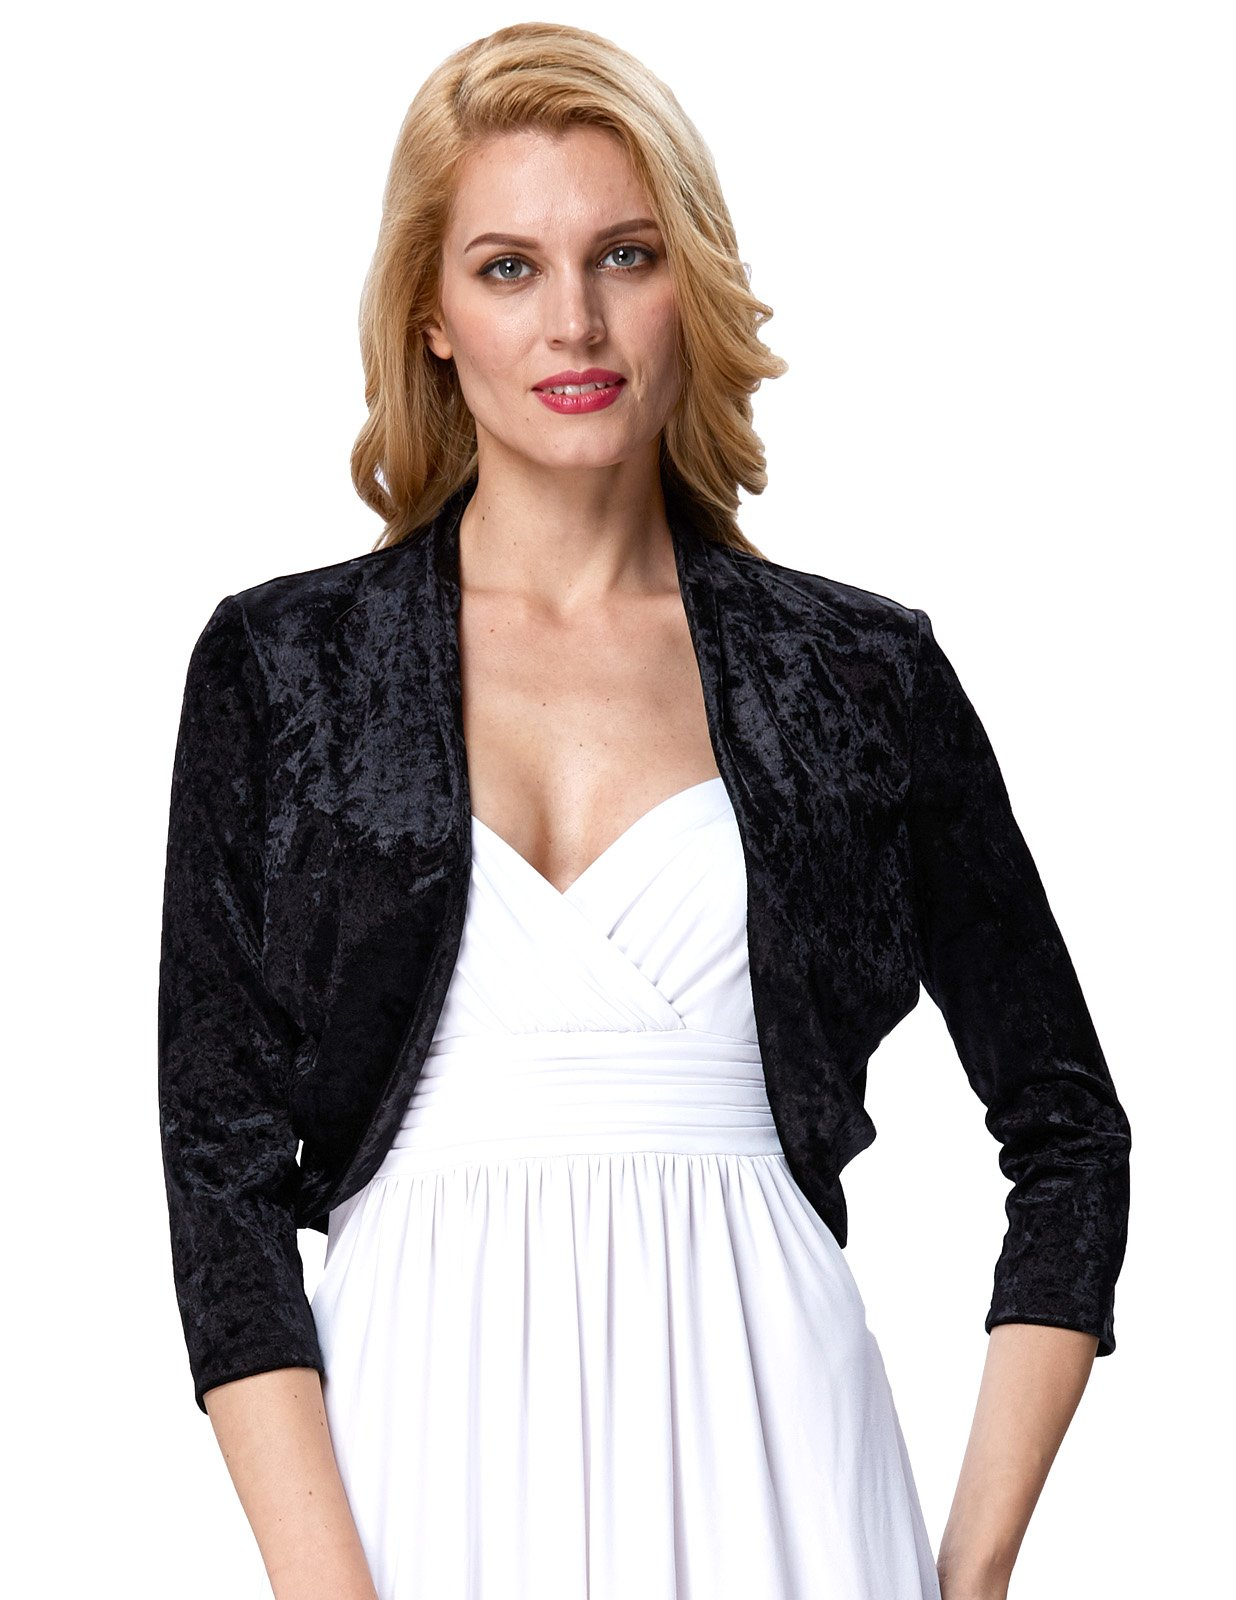 Solid Sleeves Bolero Outerwear Open Front for Teen Girls (L,Black 513-1) by JS Fashion Vintage Dress (Image #1)